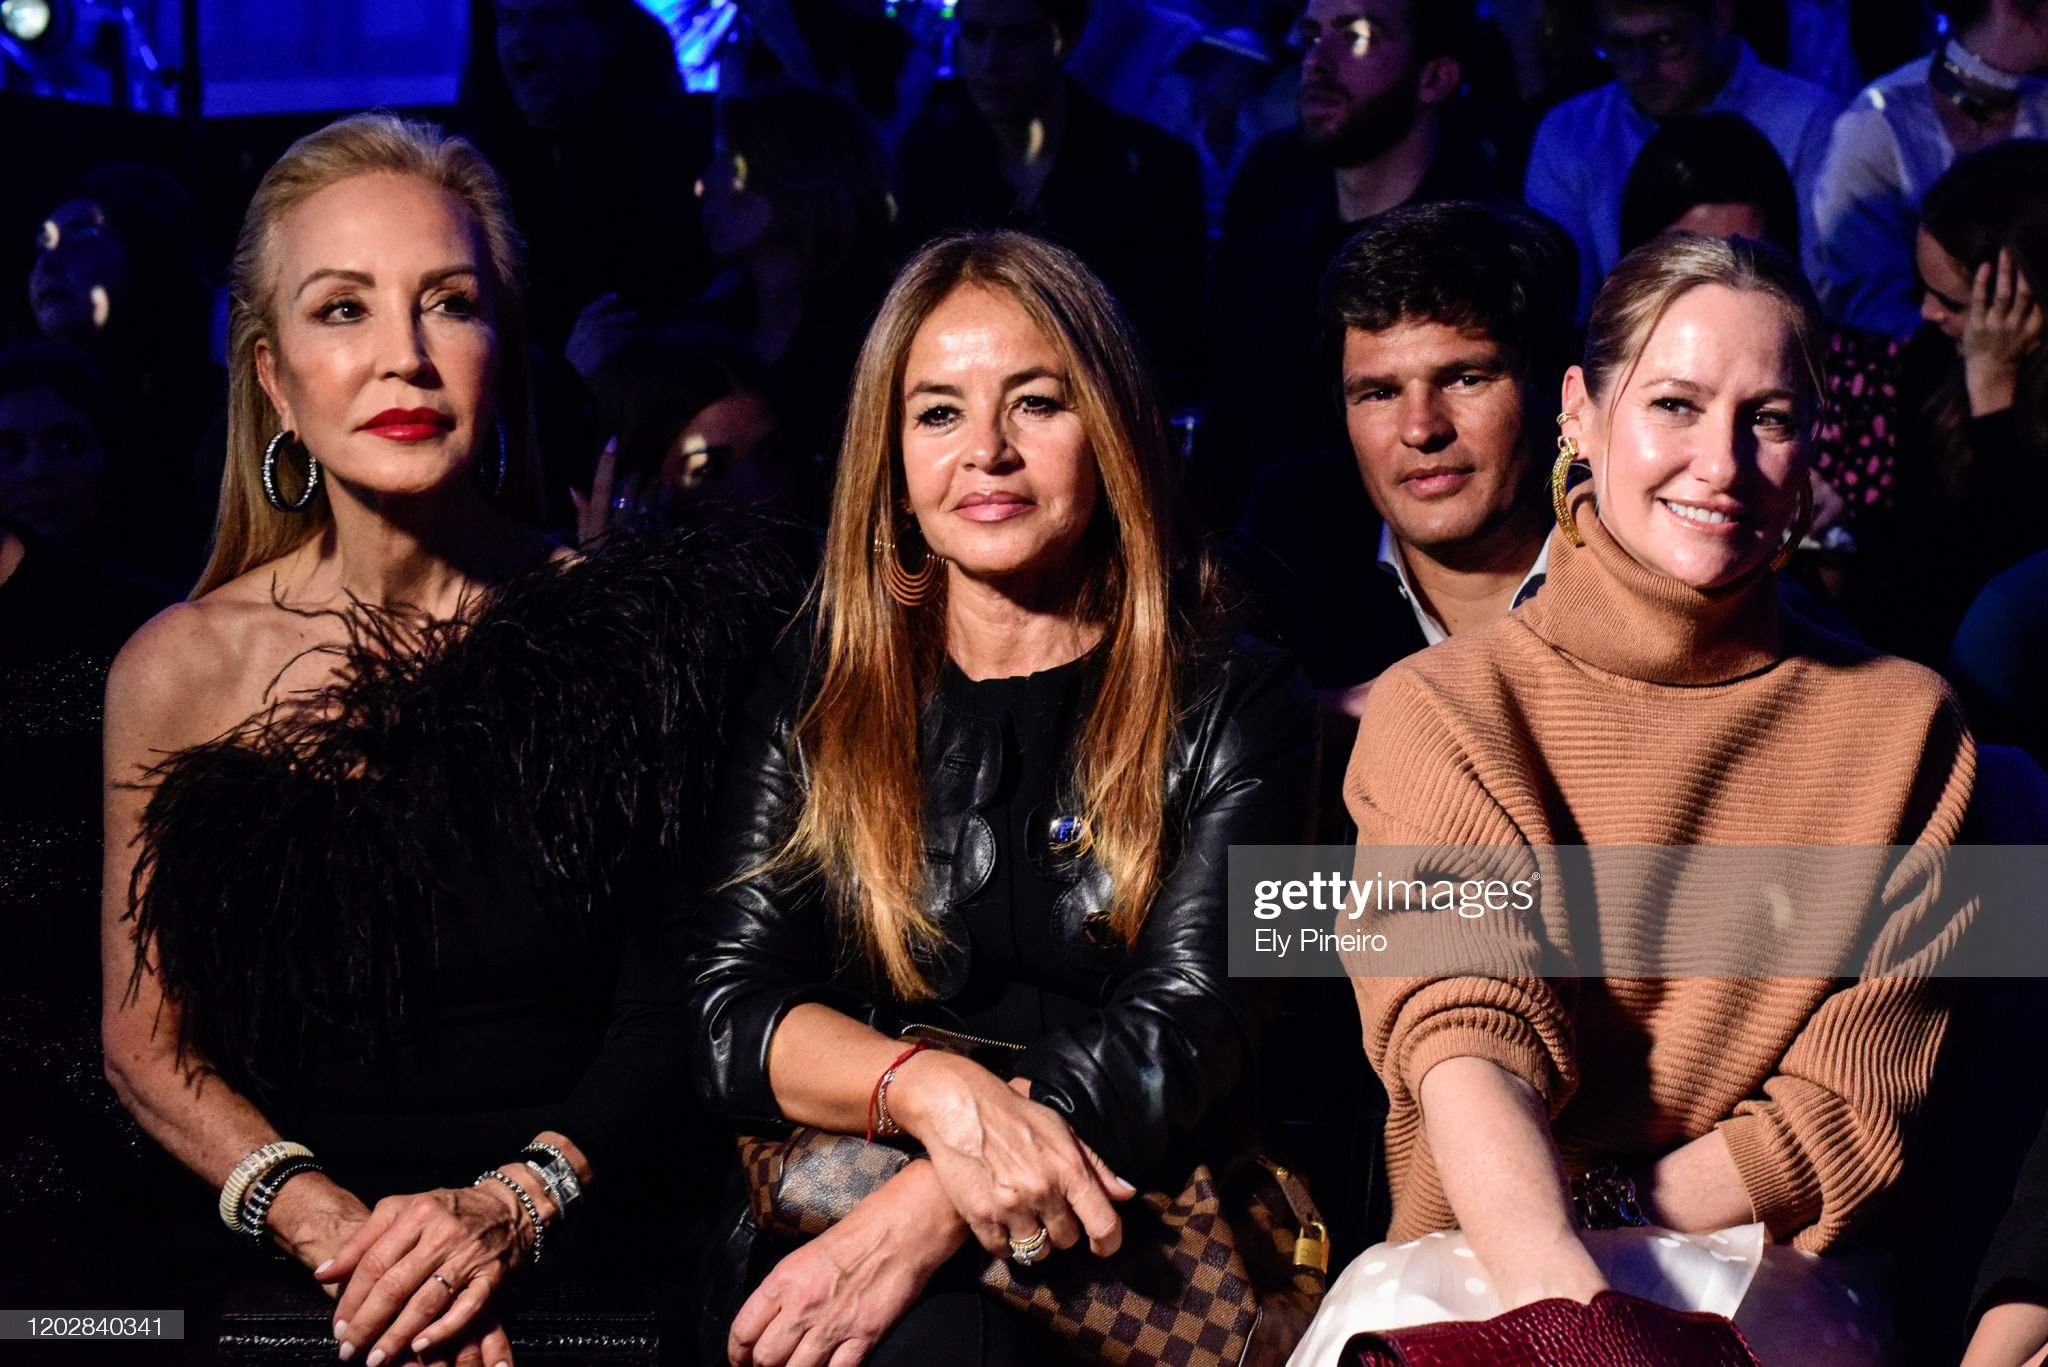 https://media.gettyimages.com/photos/carmen-lomana-and-fiona-ferrer-attends-pedro-del-hierro-fashion-show-picture-id1202840341?s=2048x2048